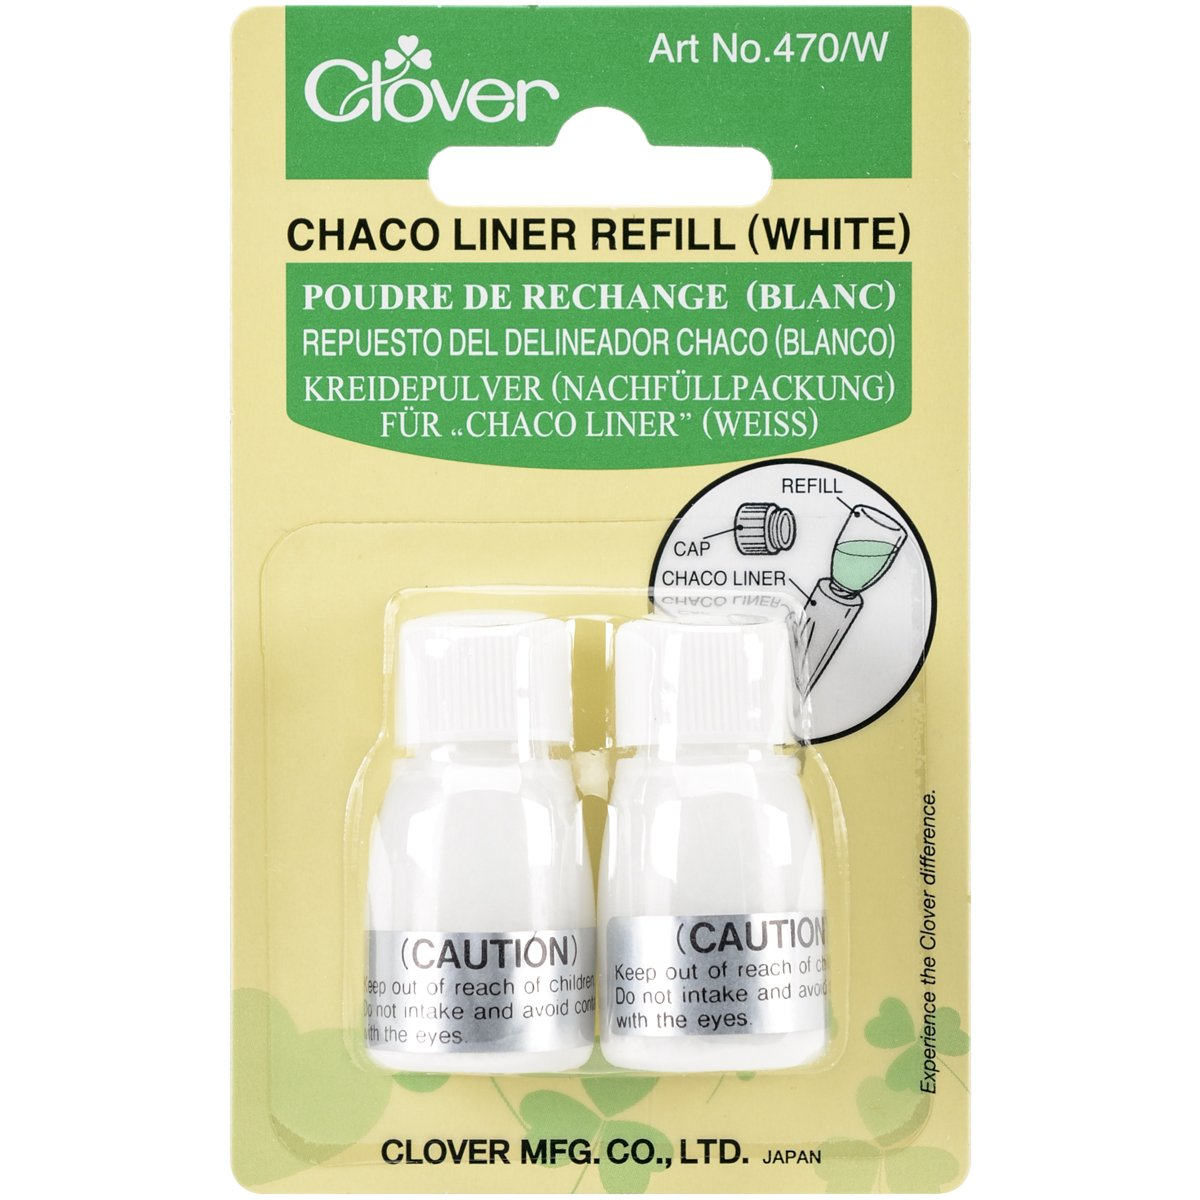 Clover Refill Chaco Liner, Yellow 470/Y